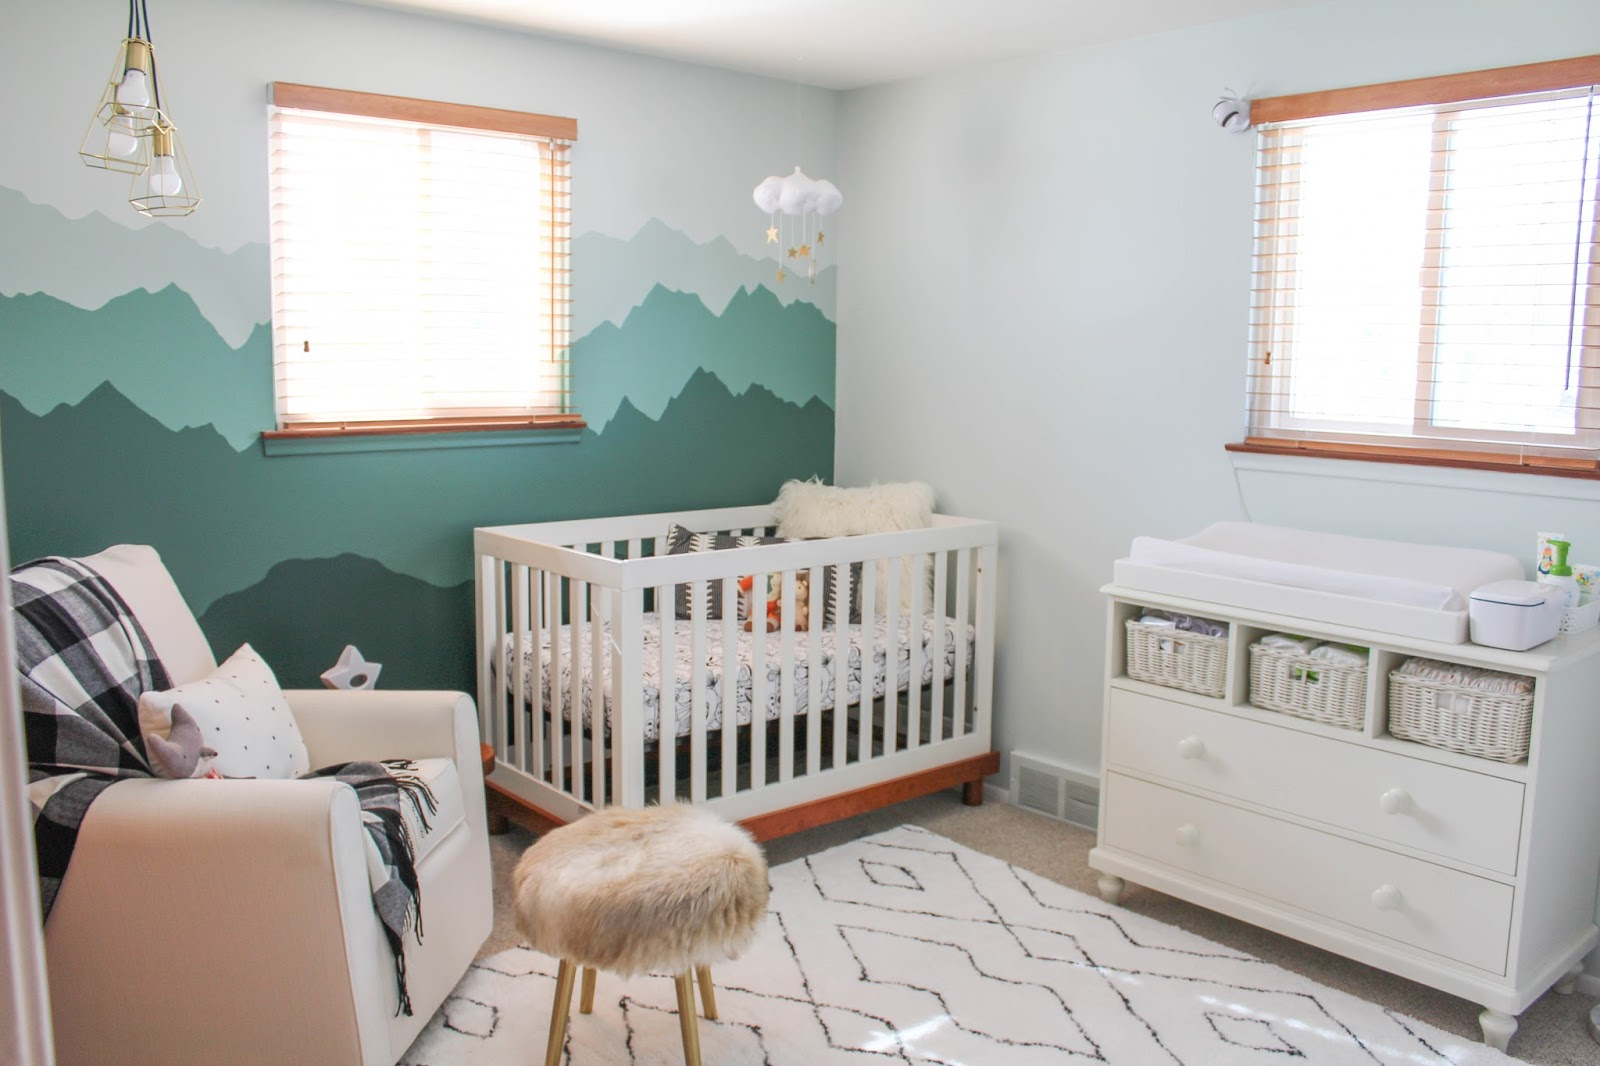 Itu0027s So Dreamy And Calming, And We Managed To Pull This Off With A Small  Budget. The Changing Table Is A Craiglist Find That ...